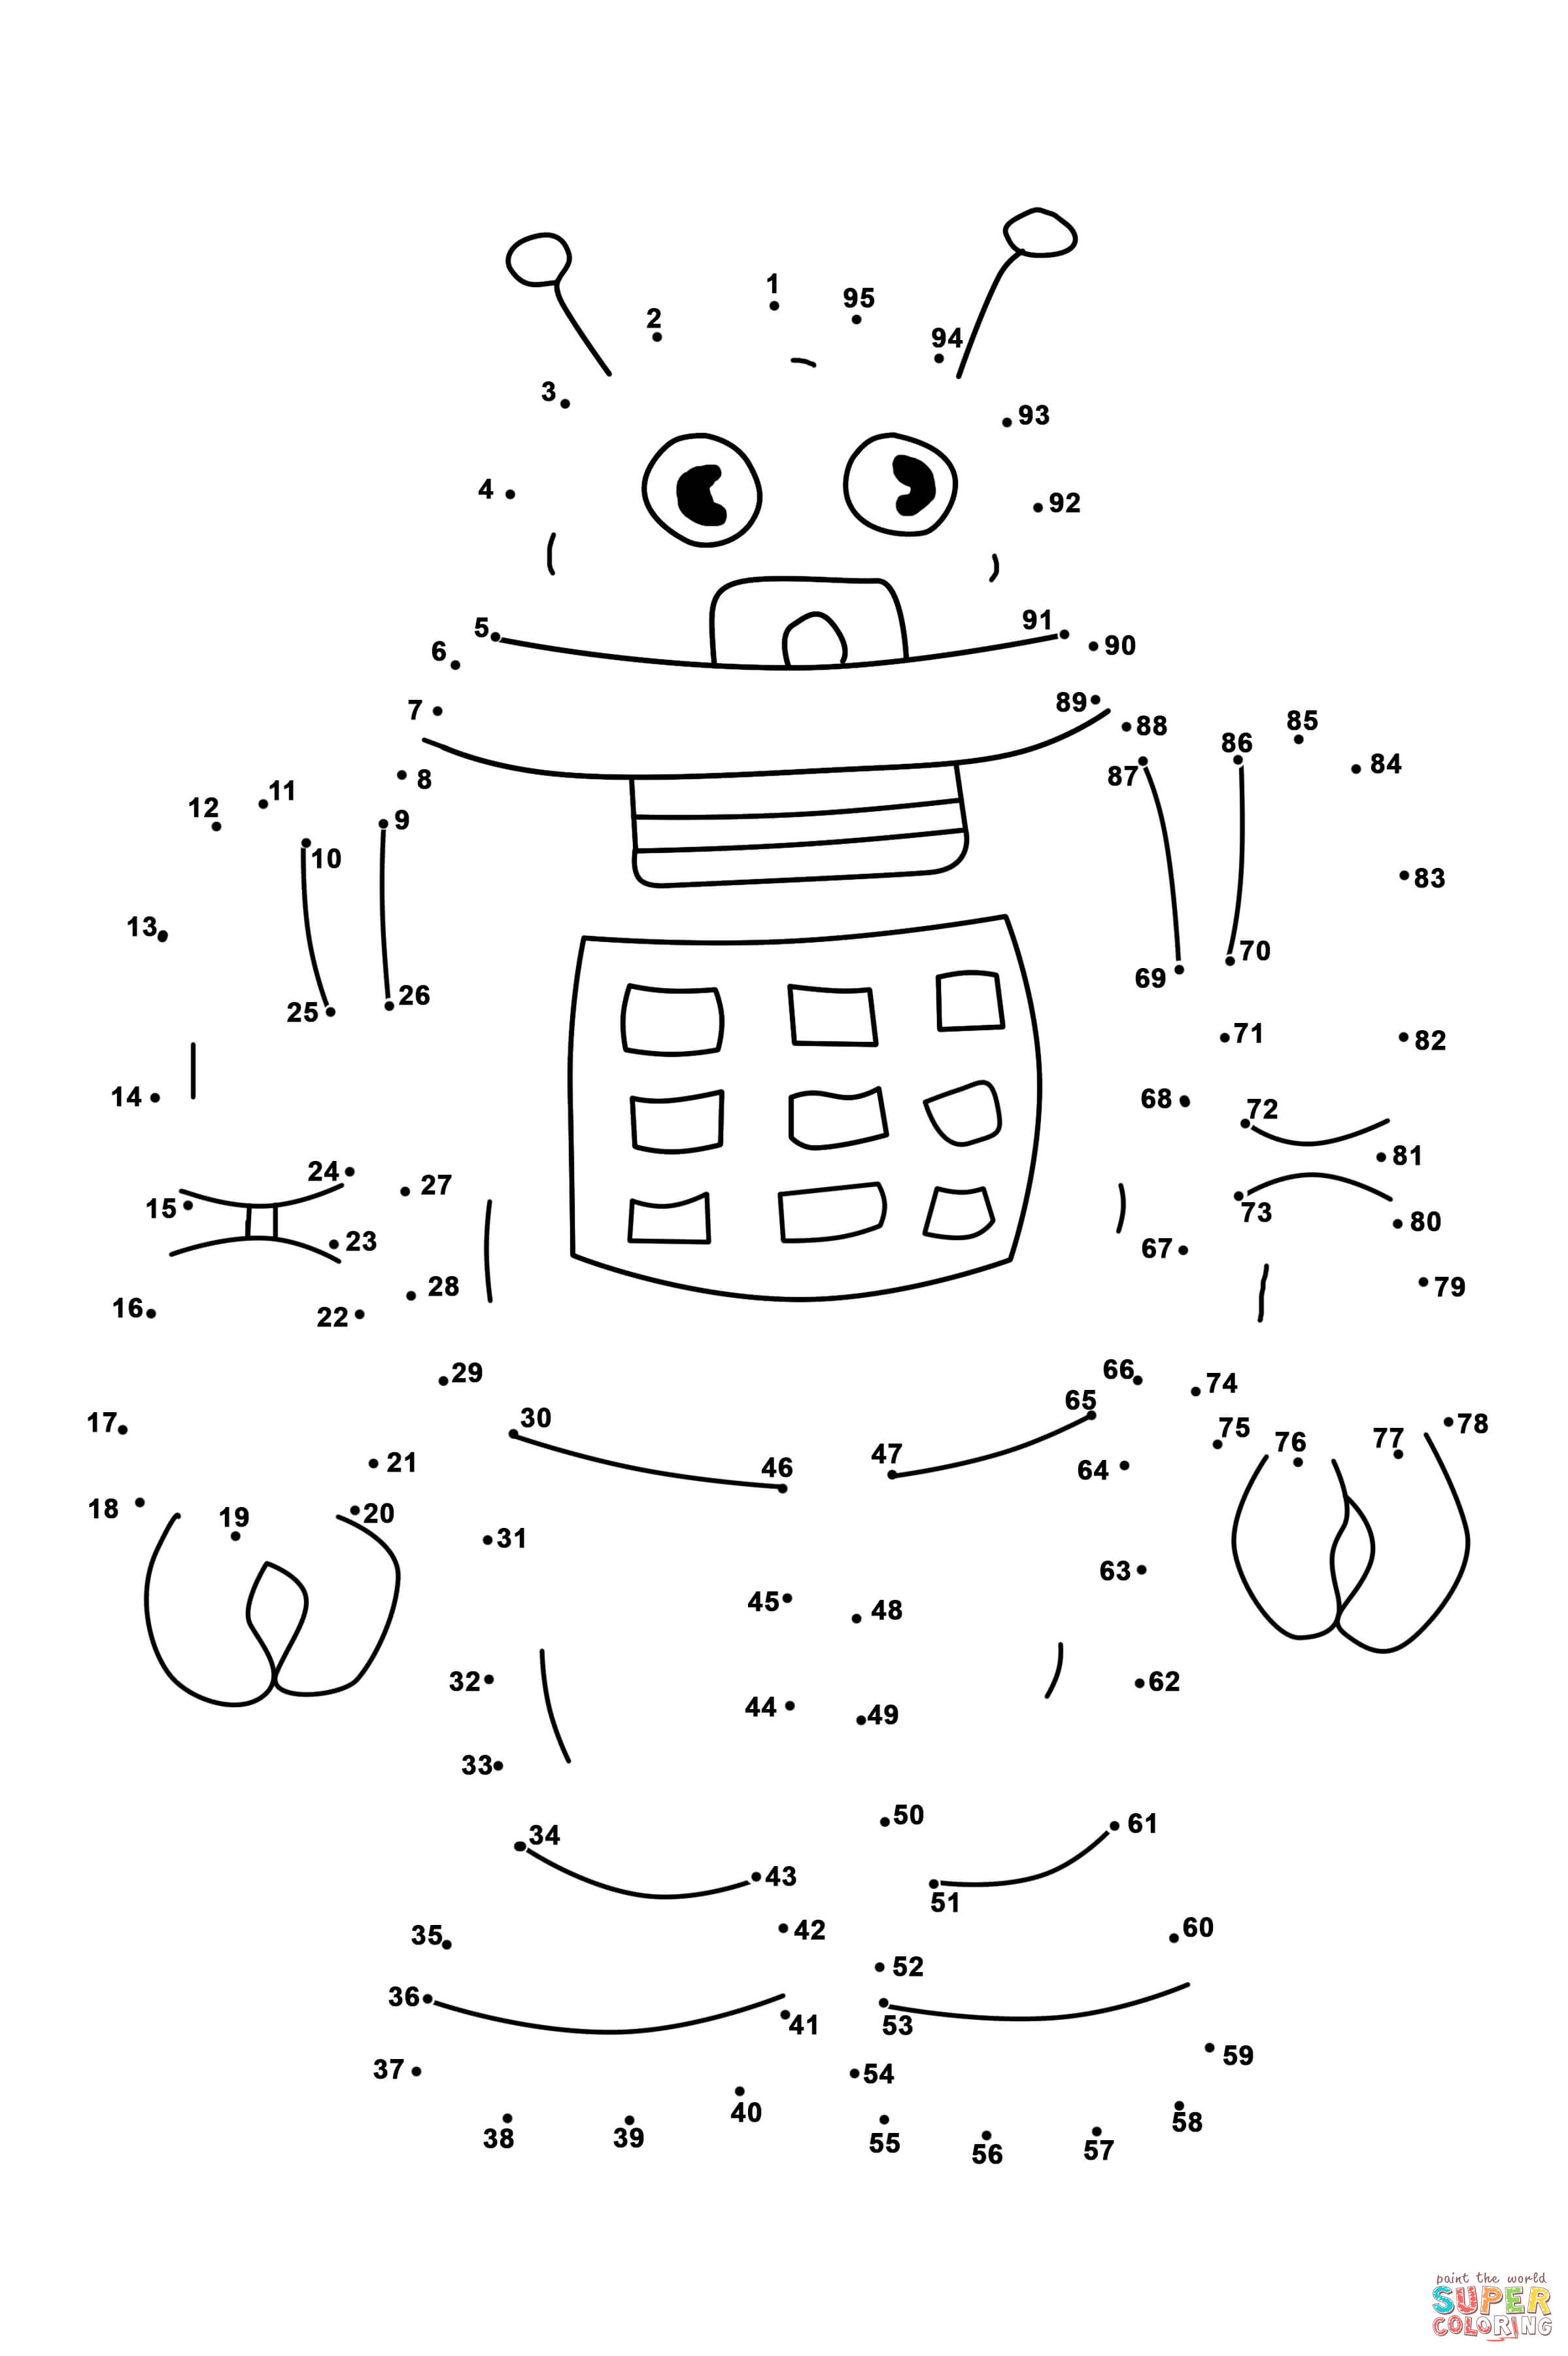 6 Best Images of Dot To Dot LEGO